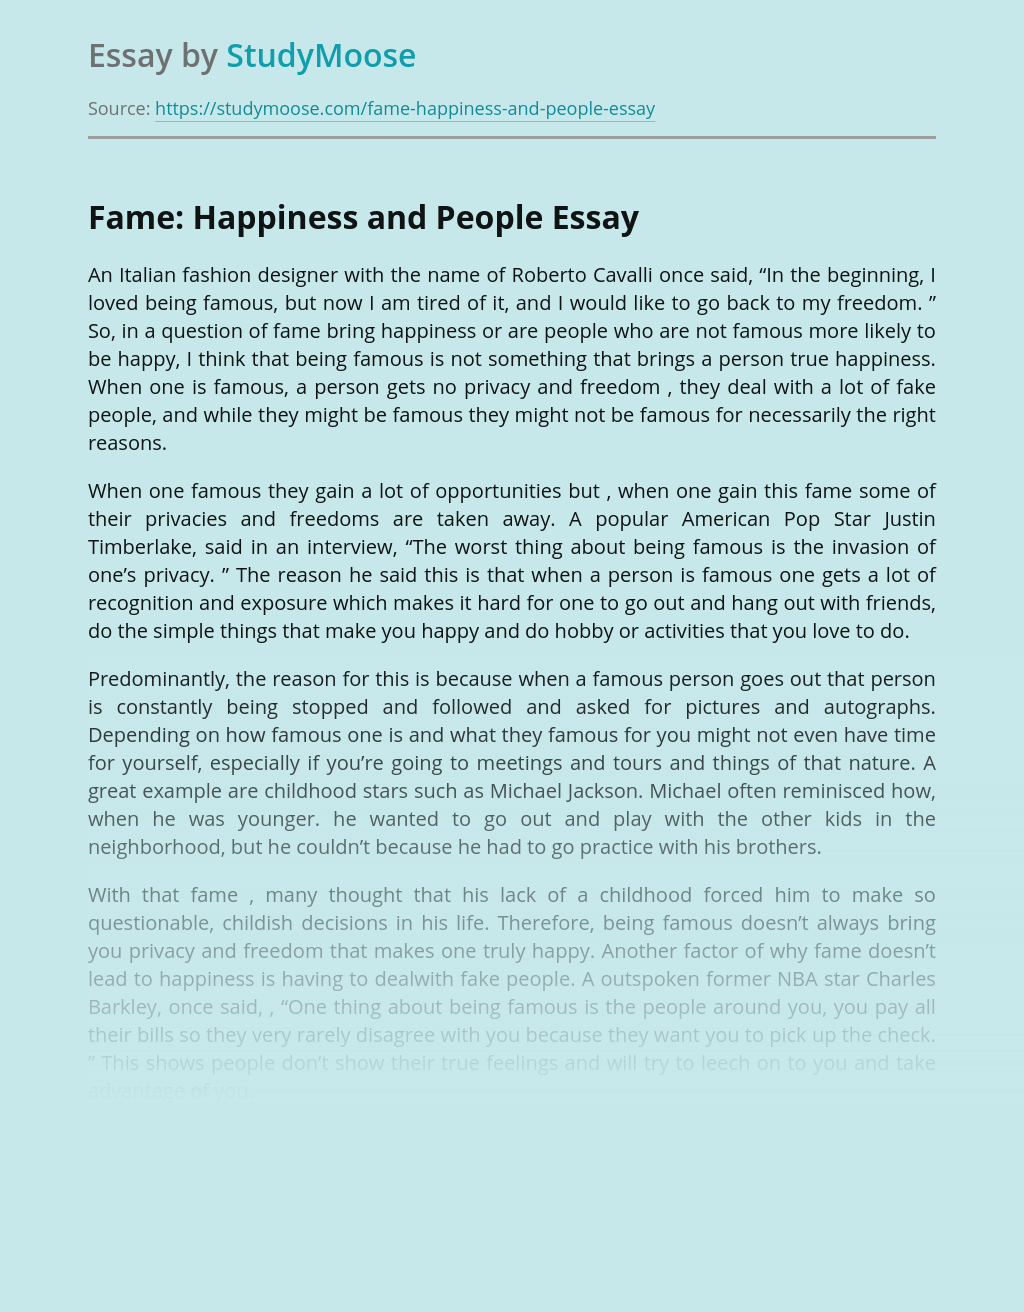 Fame: Happiness and People